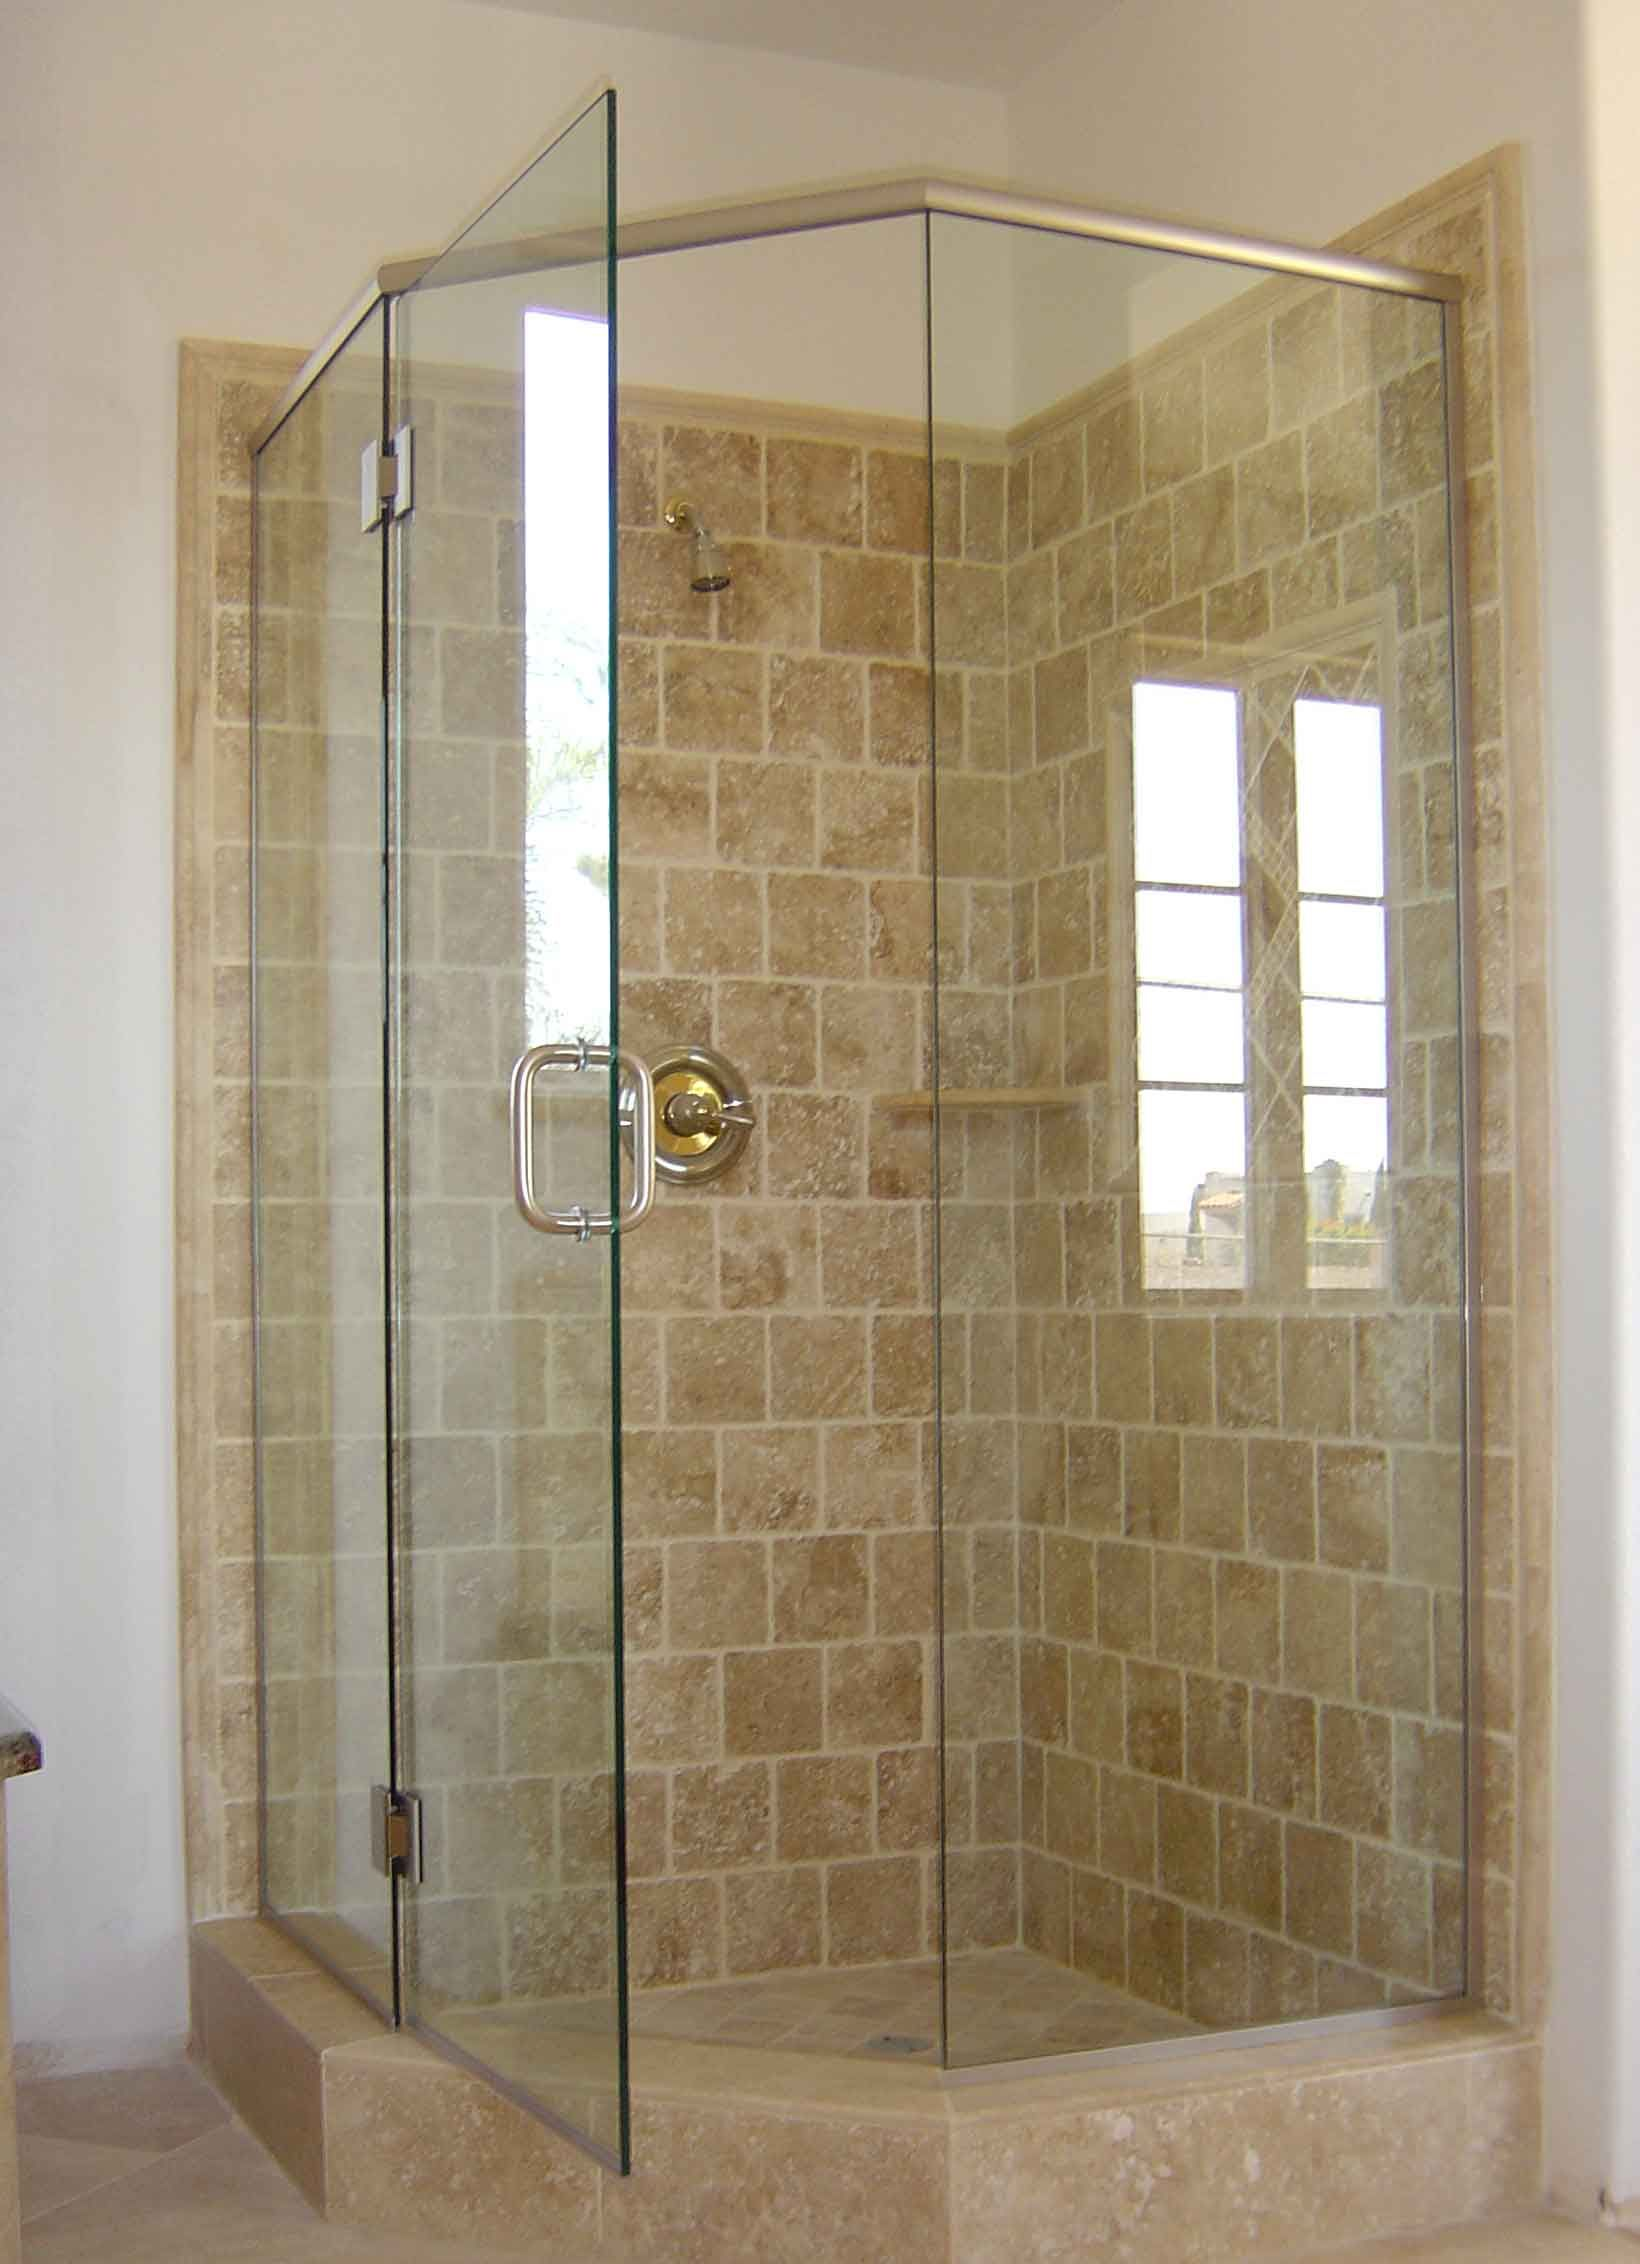 Upstairs bathroom corner shower pinteres Bathroom remodel ideas with stand up shower